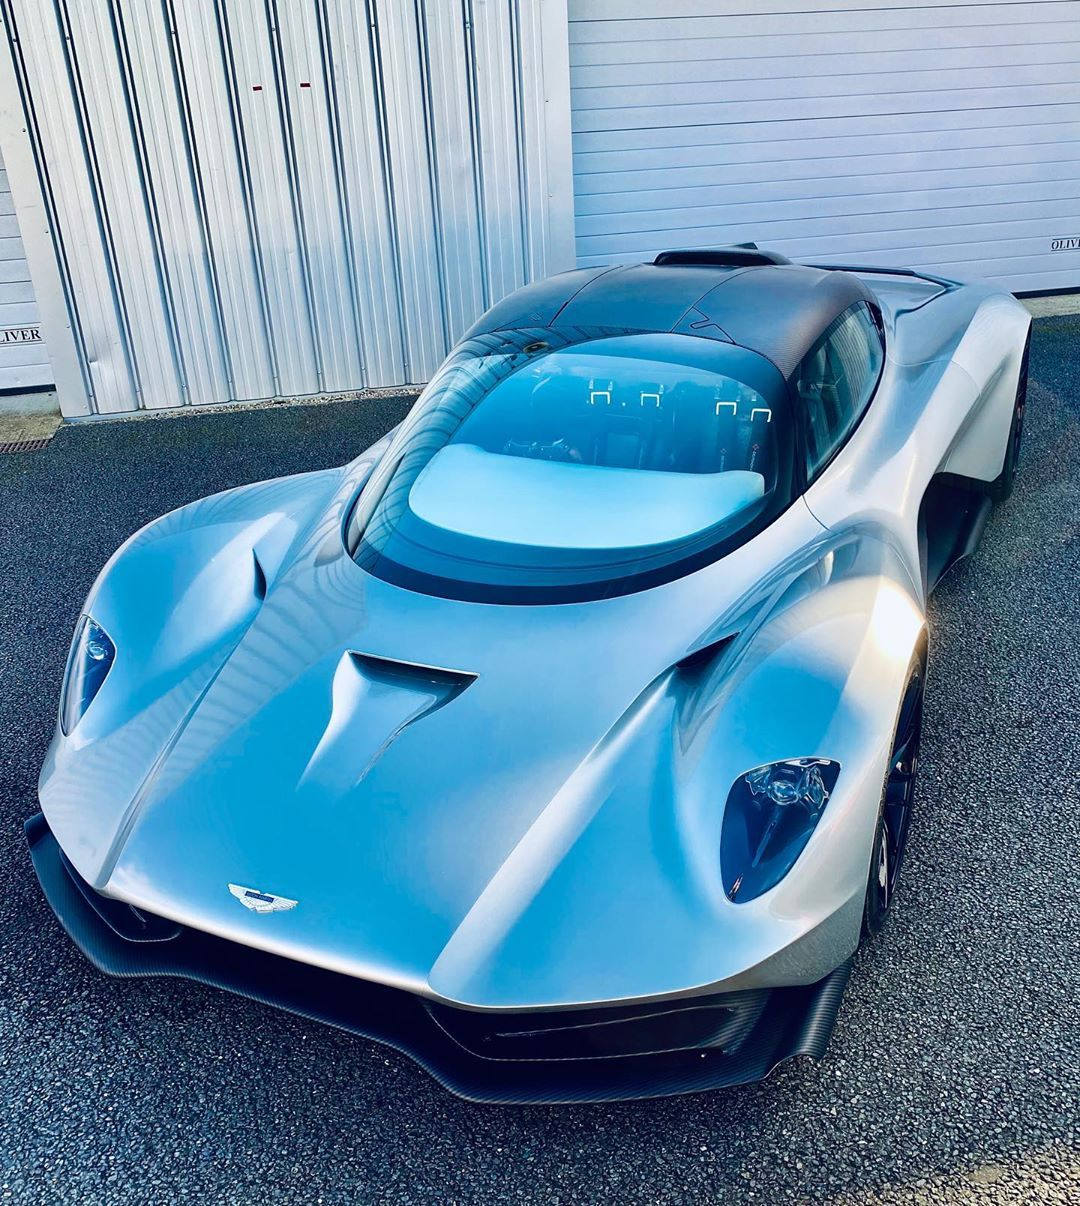 Miles On Instagram Straight From The Movie Set 7 Astonmartin Astonmartinvalhalla Valhalla Cardesign Design Luxur In 2020 Movie Sets Super Cars Movies